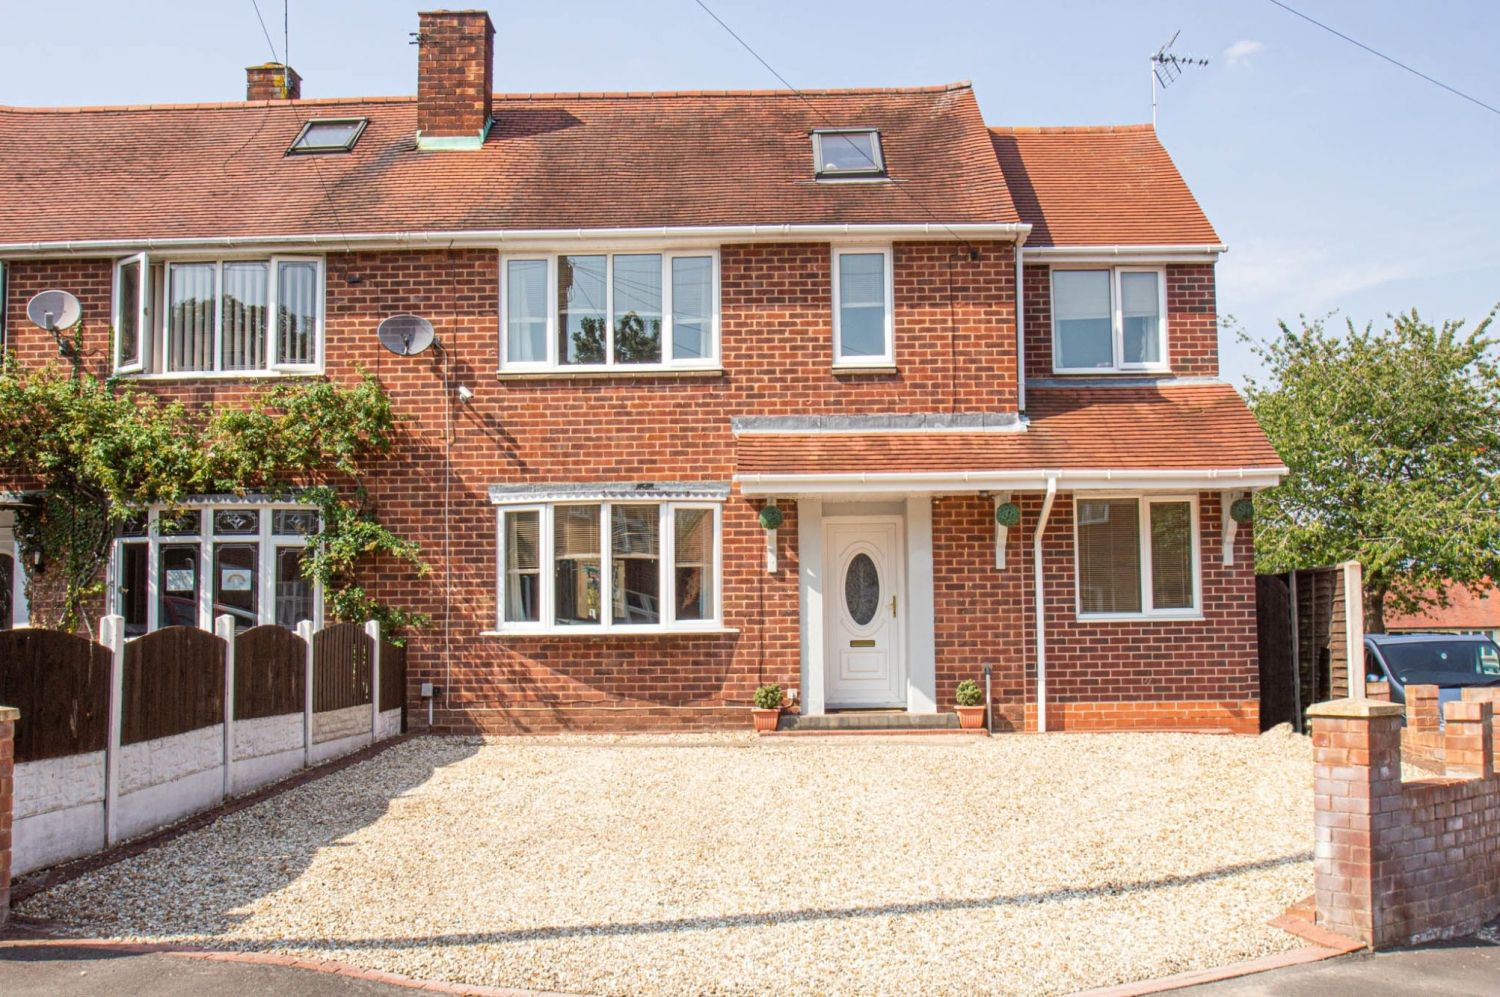 4 bed semi-detached for sale in Oak Street, Kingswinford 1